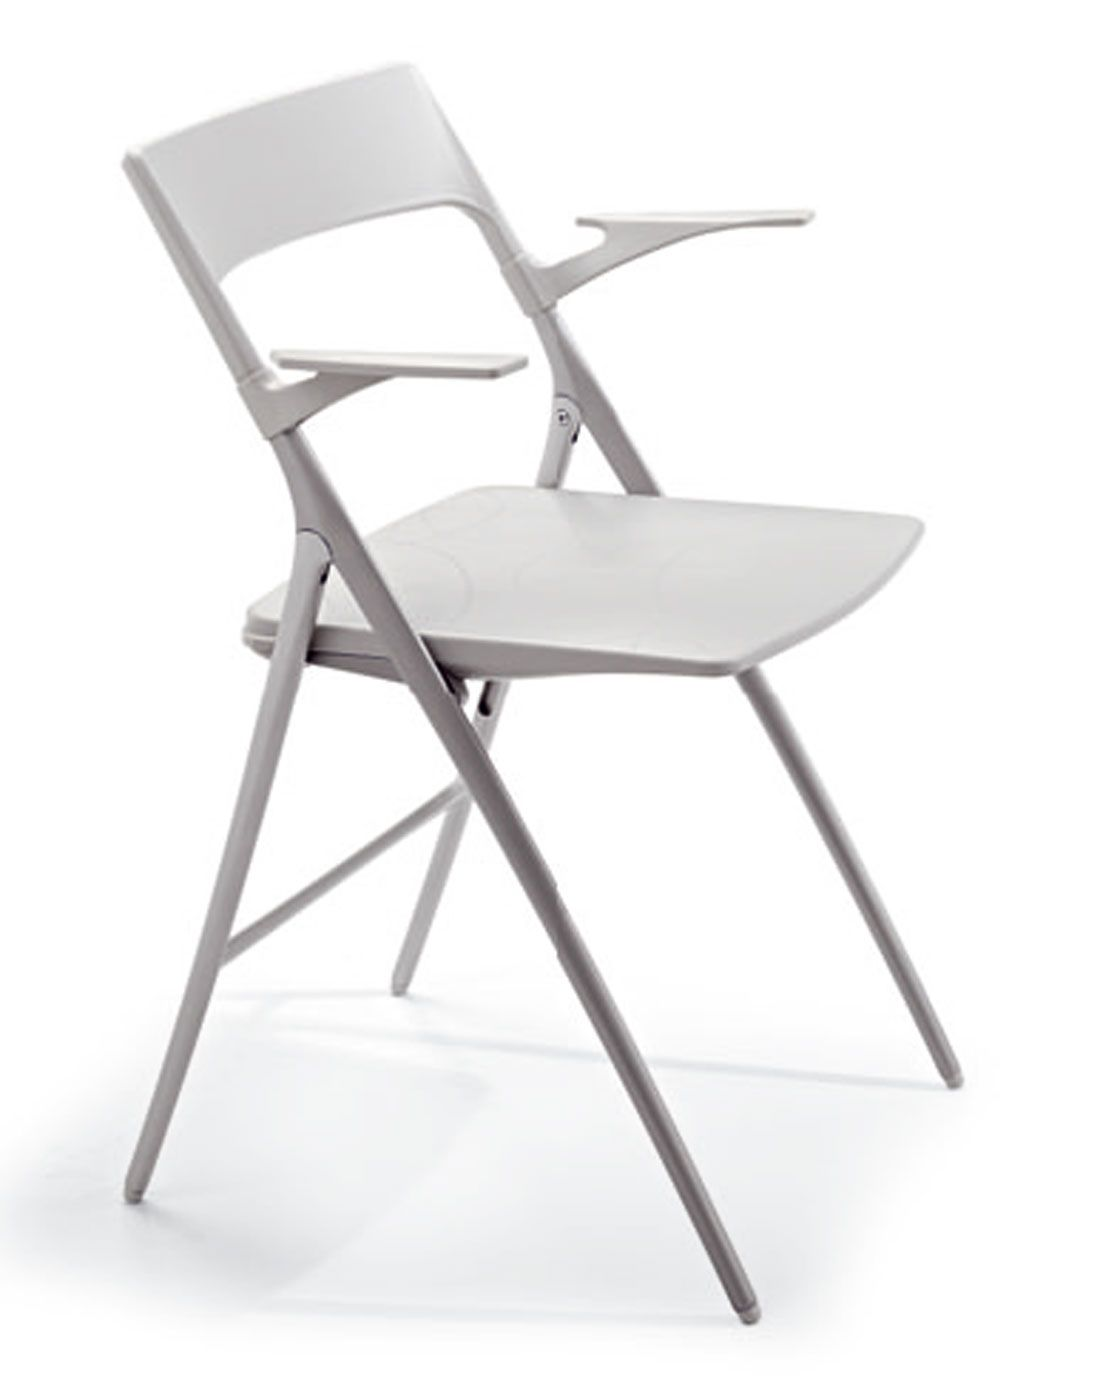 Designer Folding Chair with Arms Plek line Reality